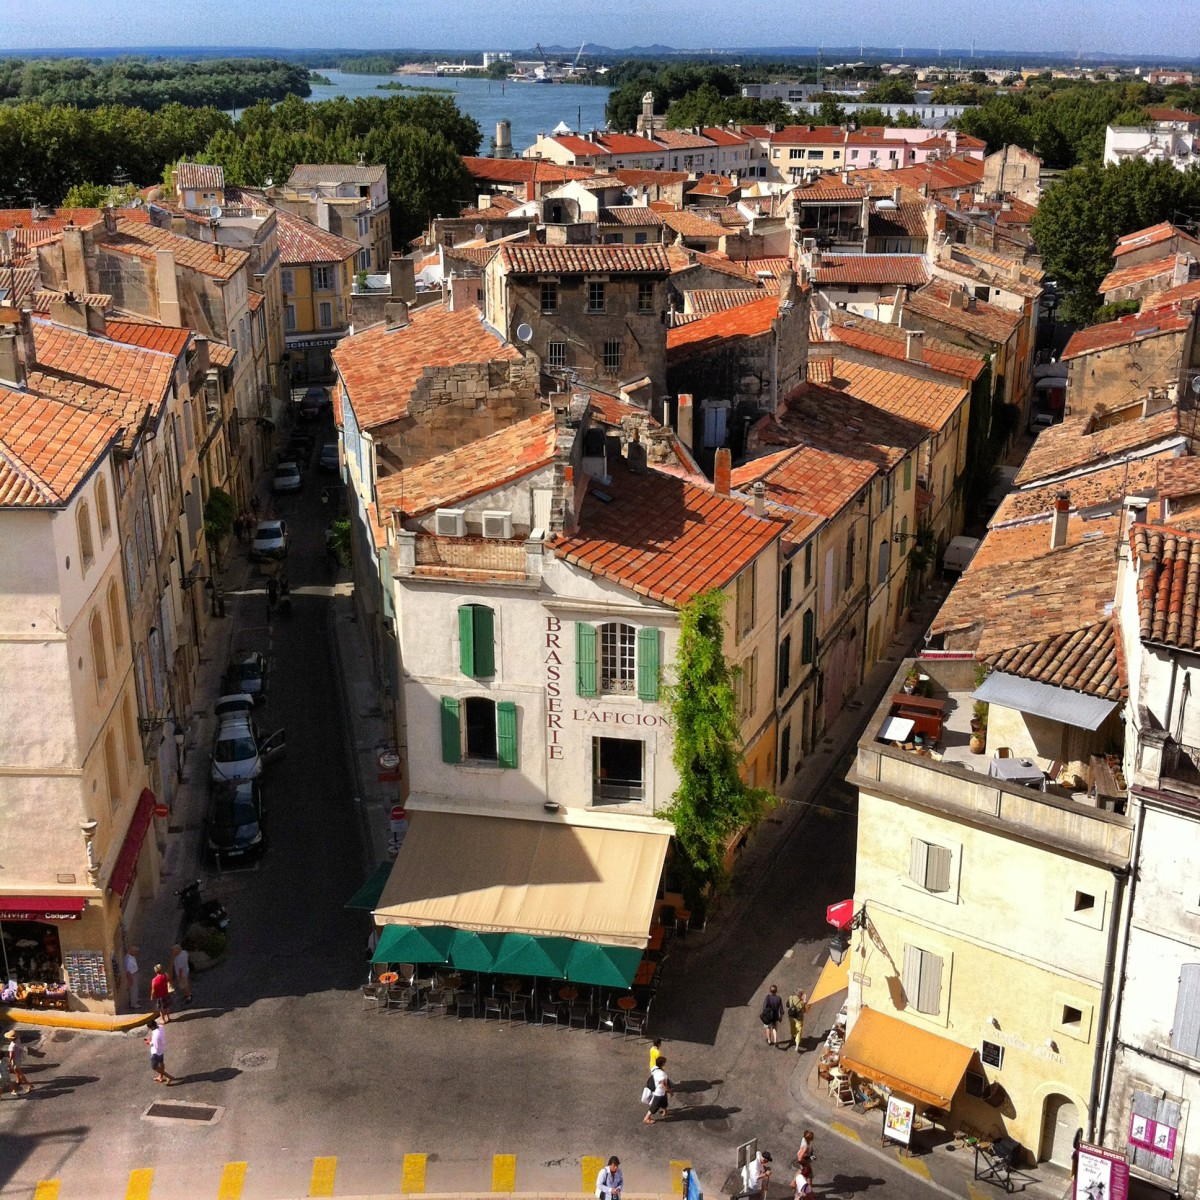 A view of Arles and  the Rhône River from the Amphitheater tower looking north.